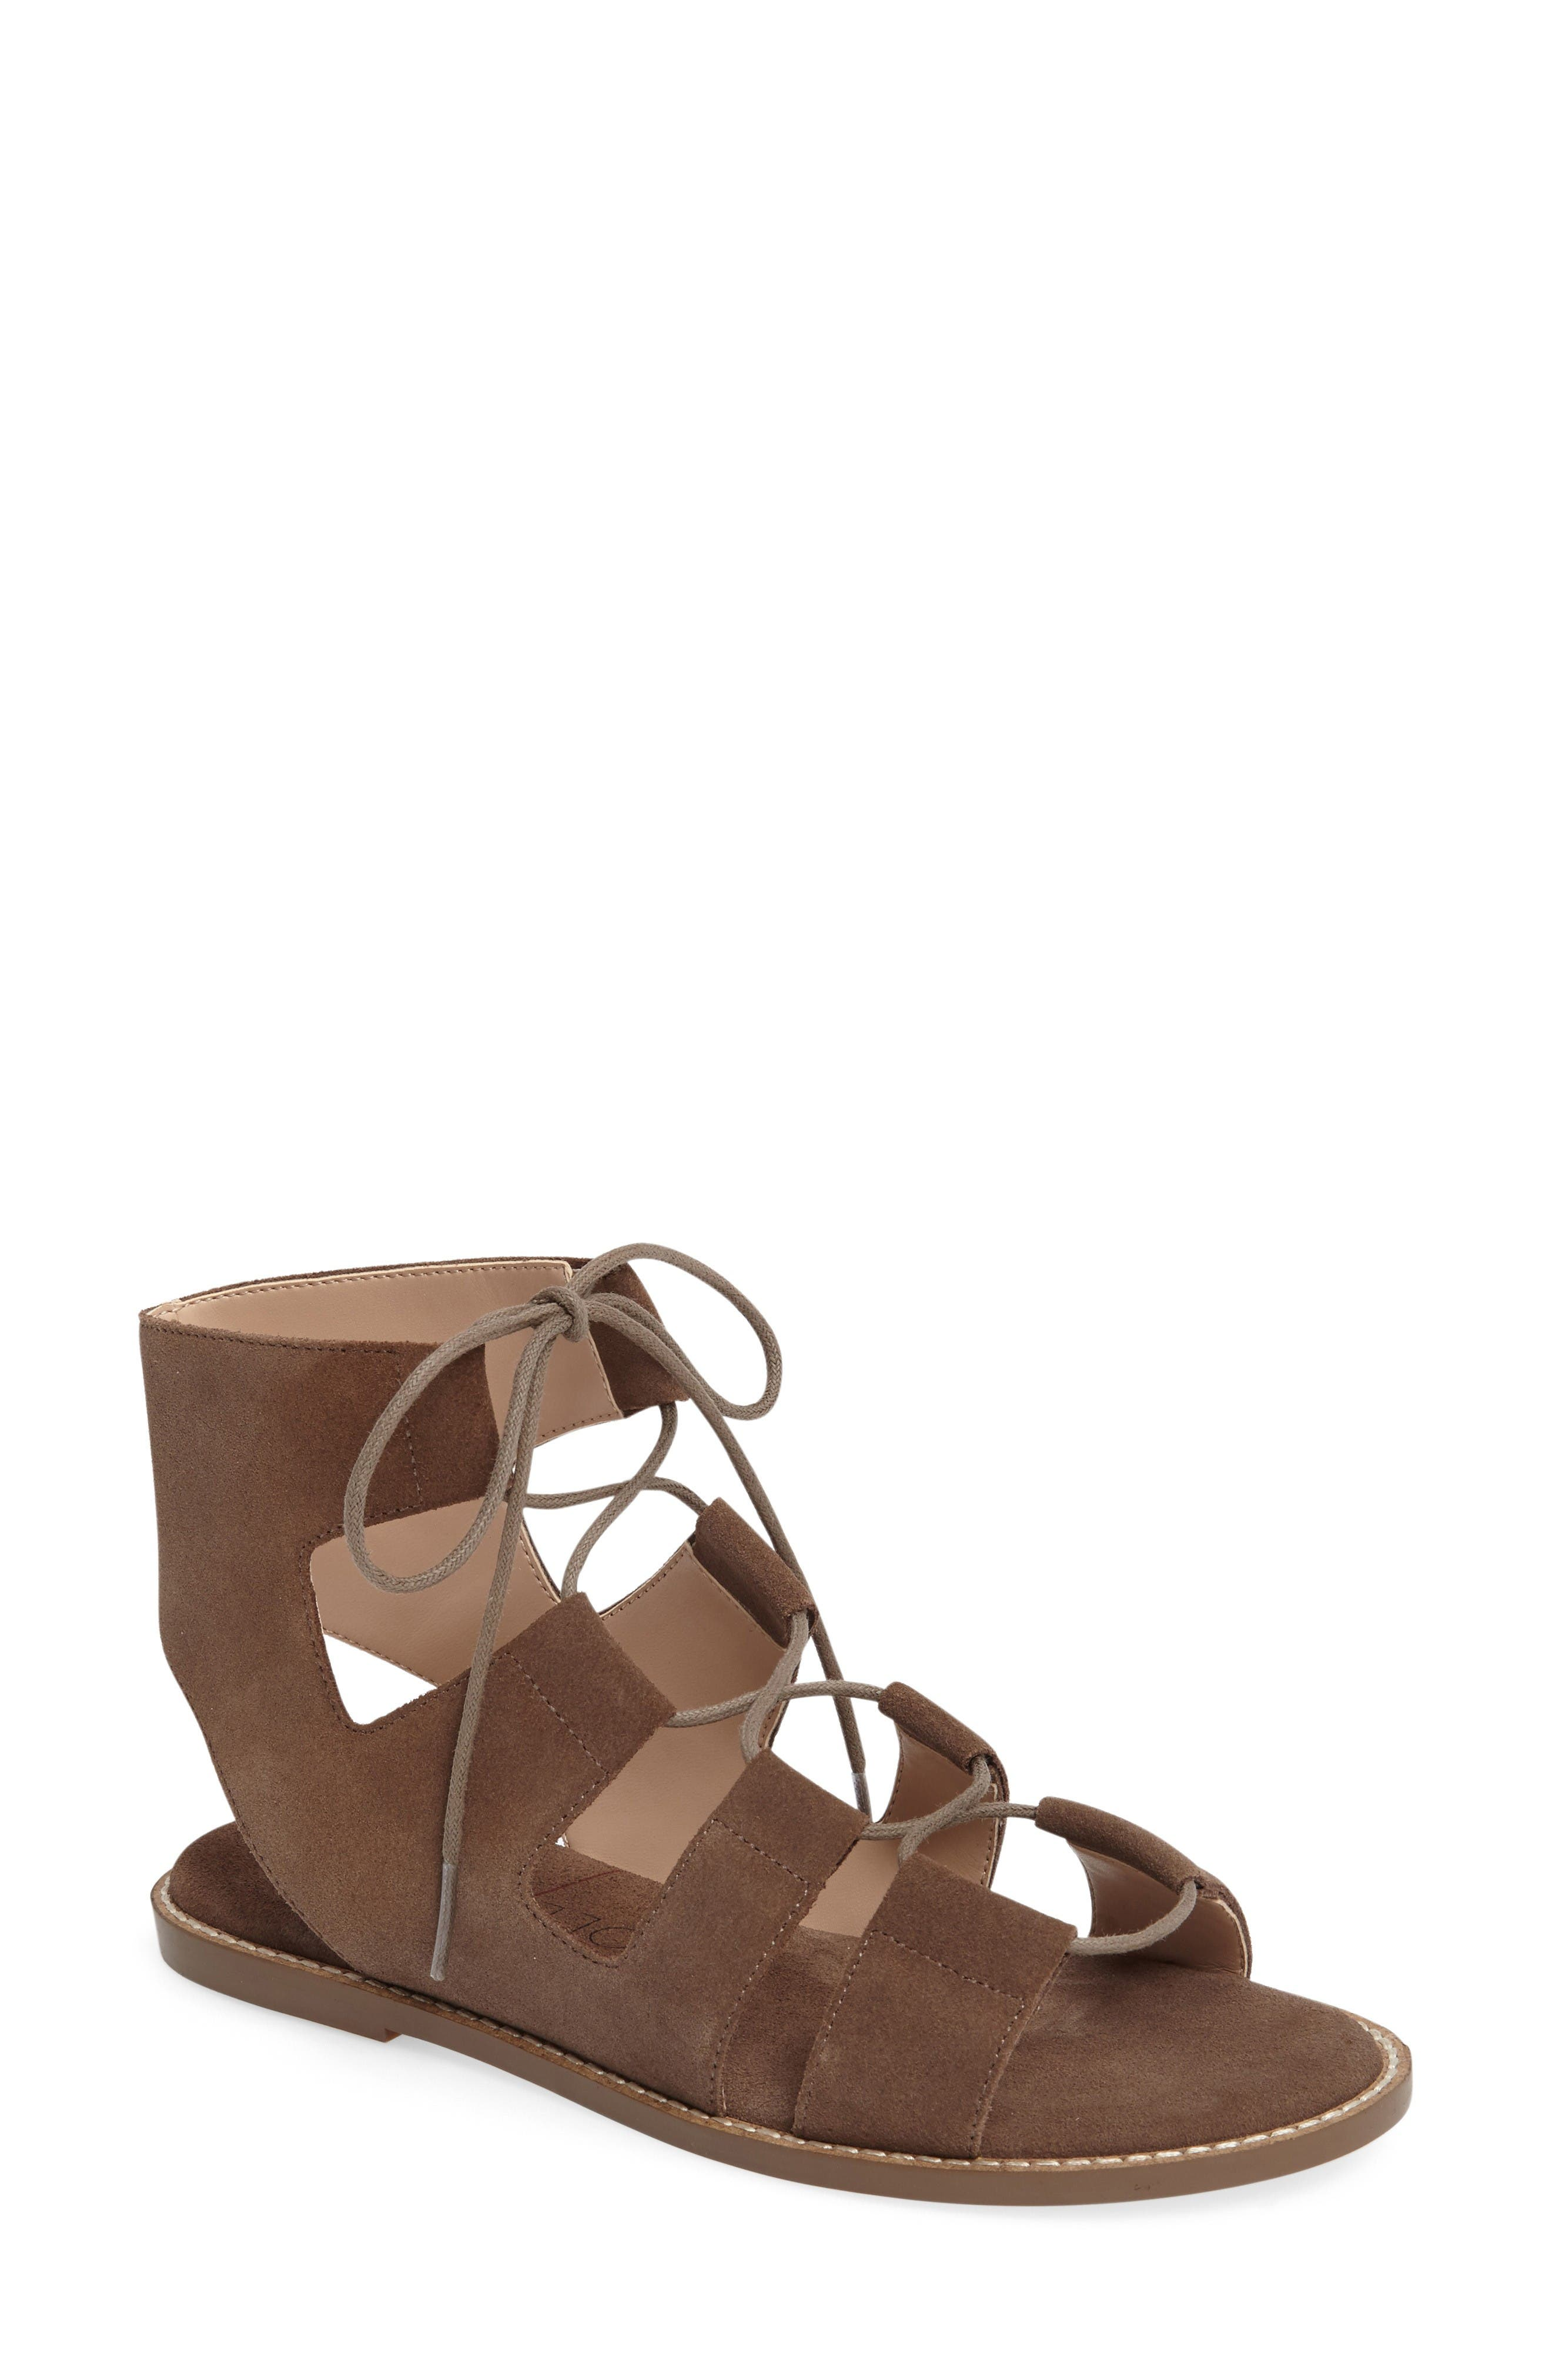 Alternate Image 1 Selected - Sole Society 'Cady' Lace-Up Flat Sandal (Women)